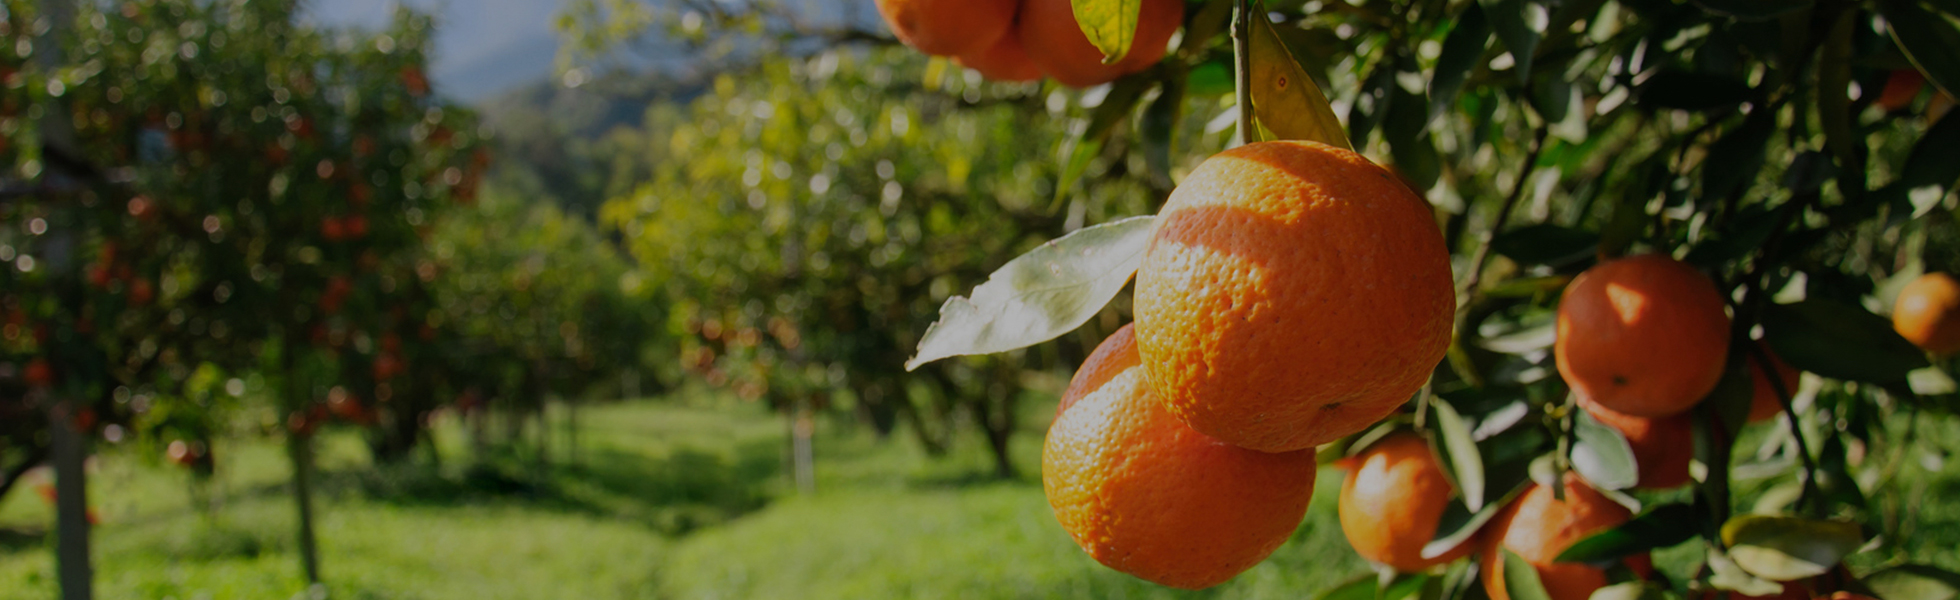 Combat Greening (HLB) in Your Citrus Fields